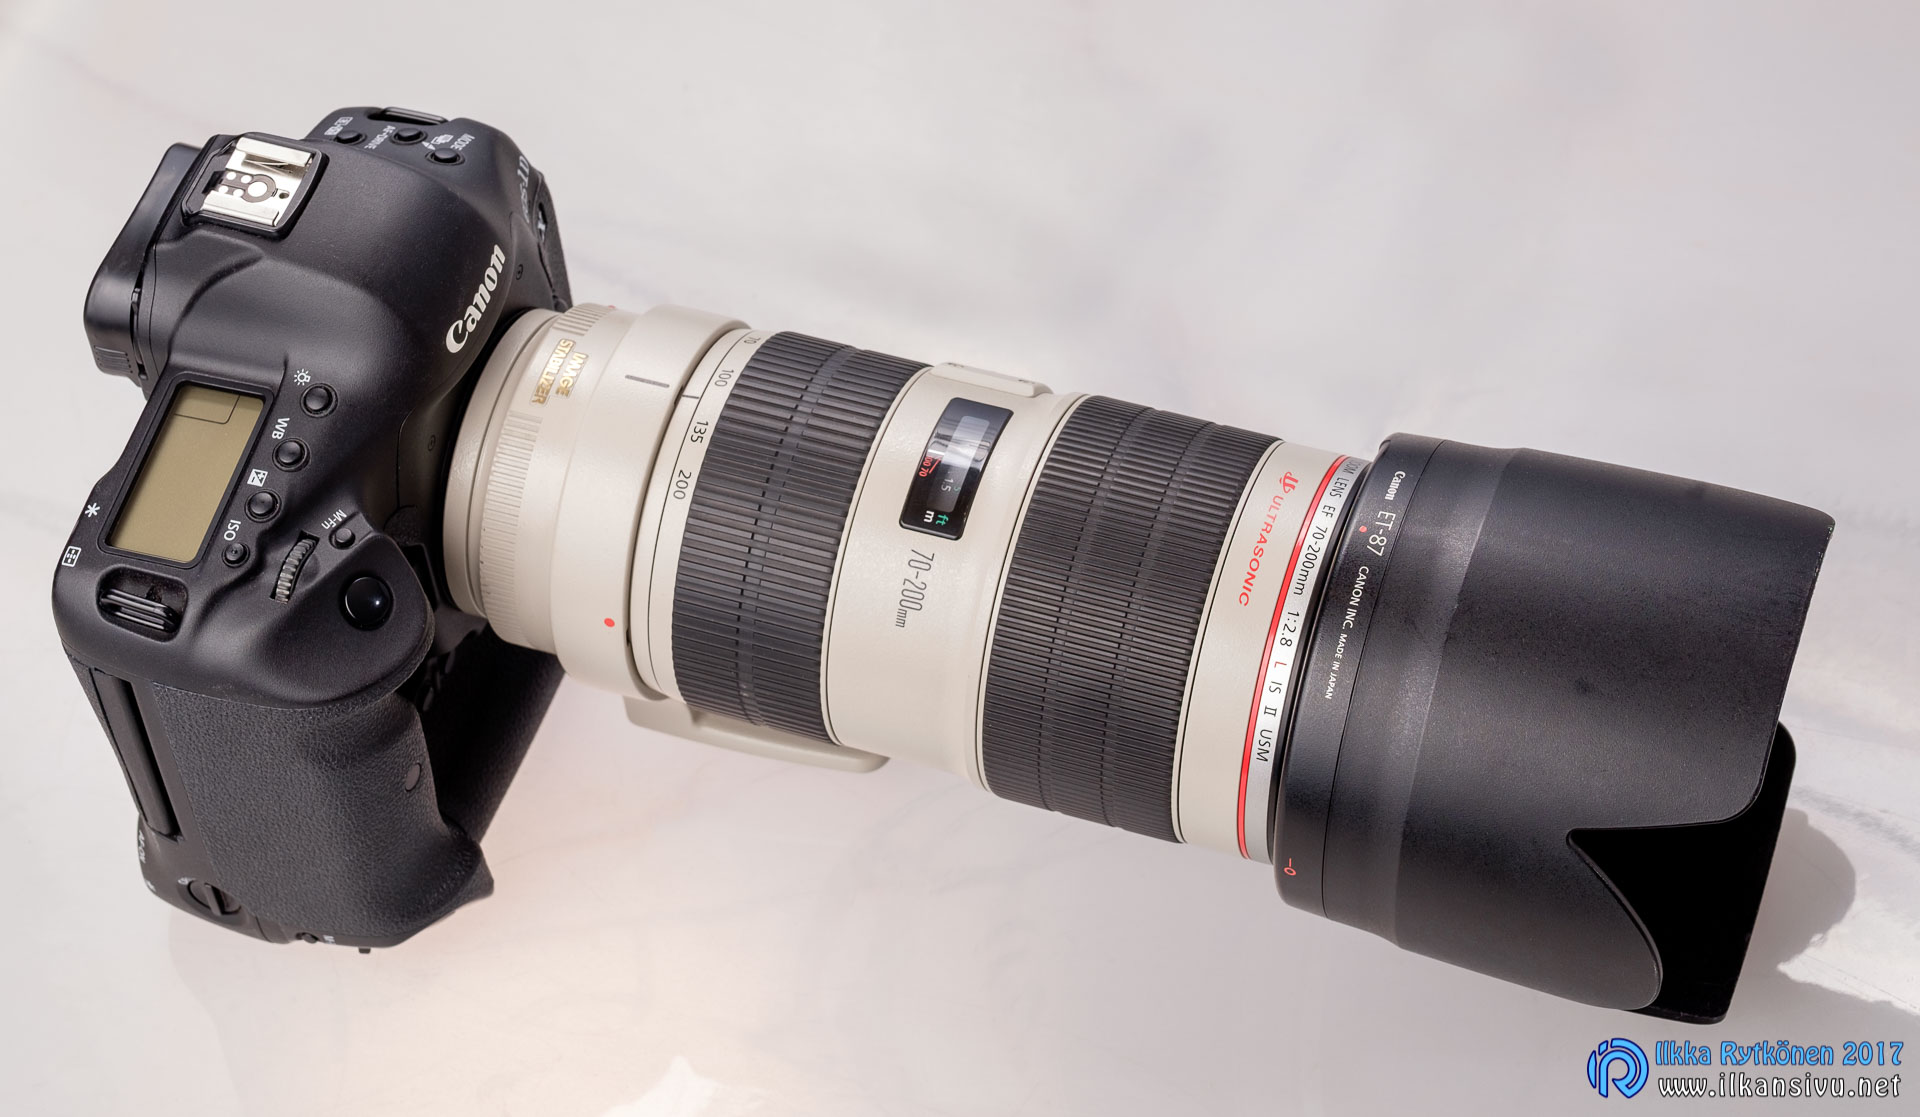 Canon EOS-1D X + EF 70-200mm f/2.8L IS II USM